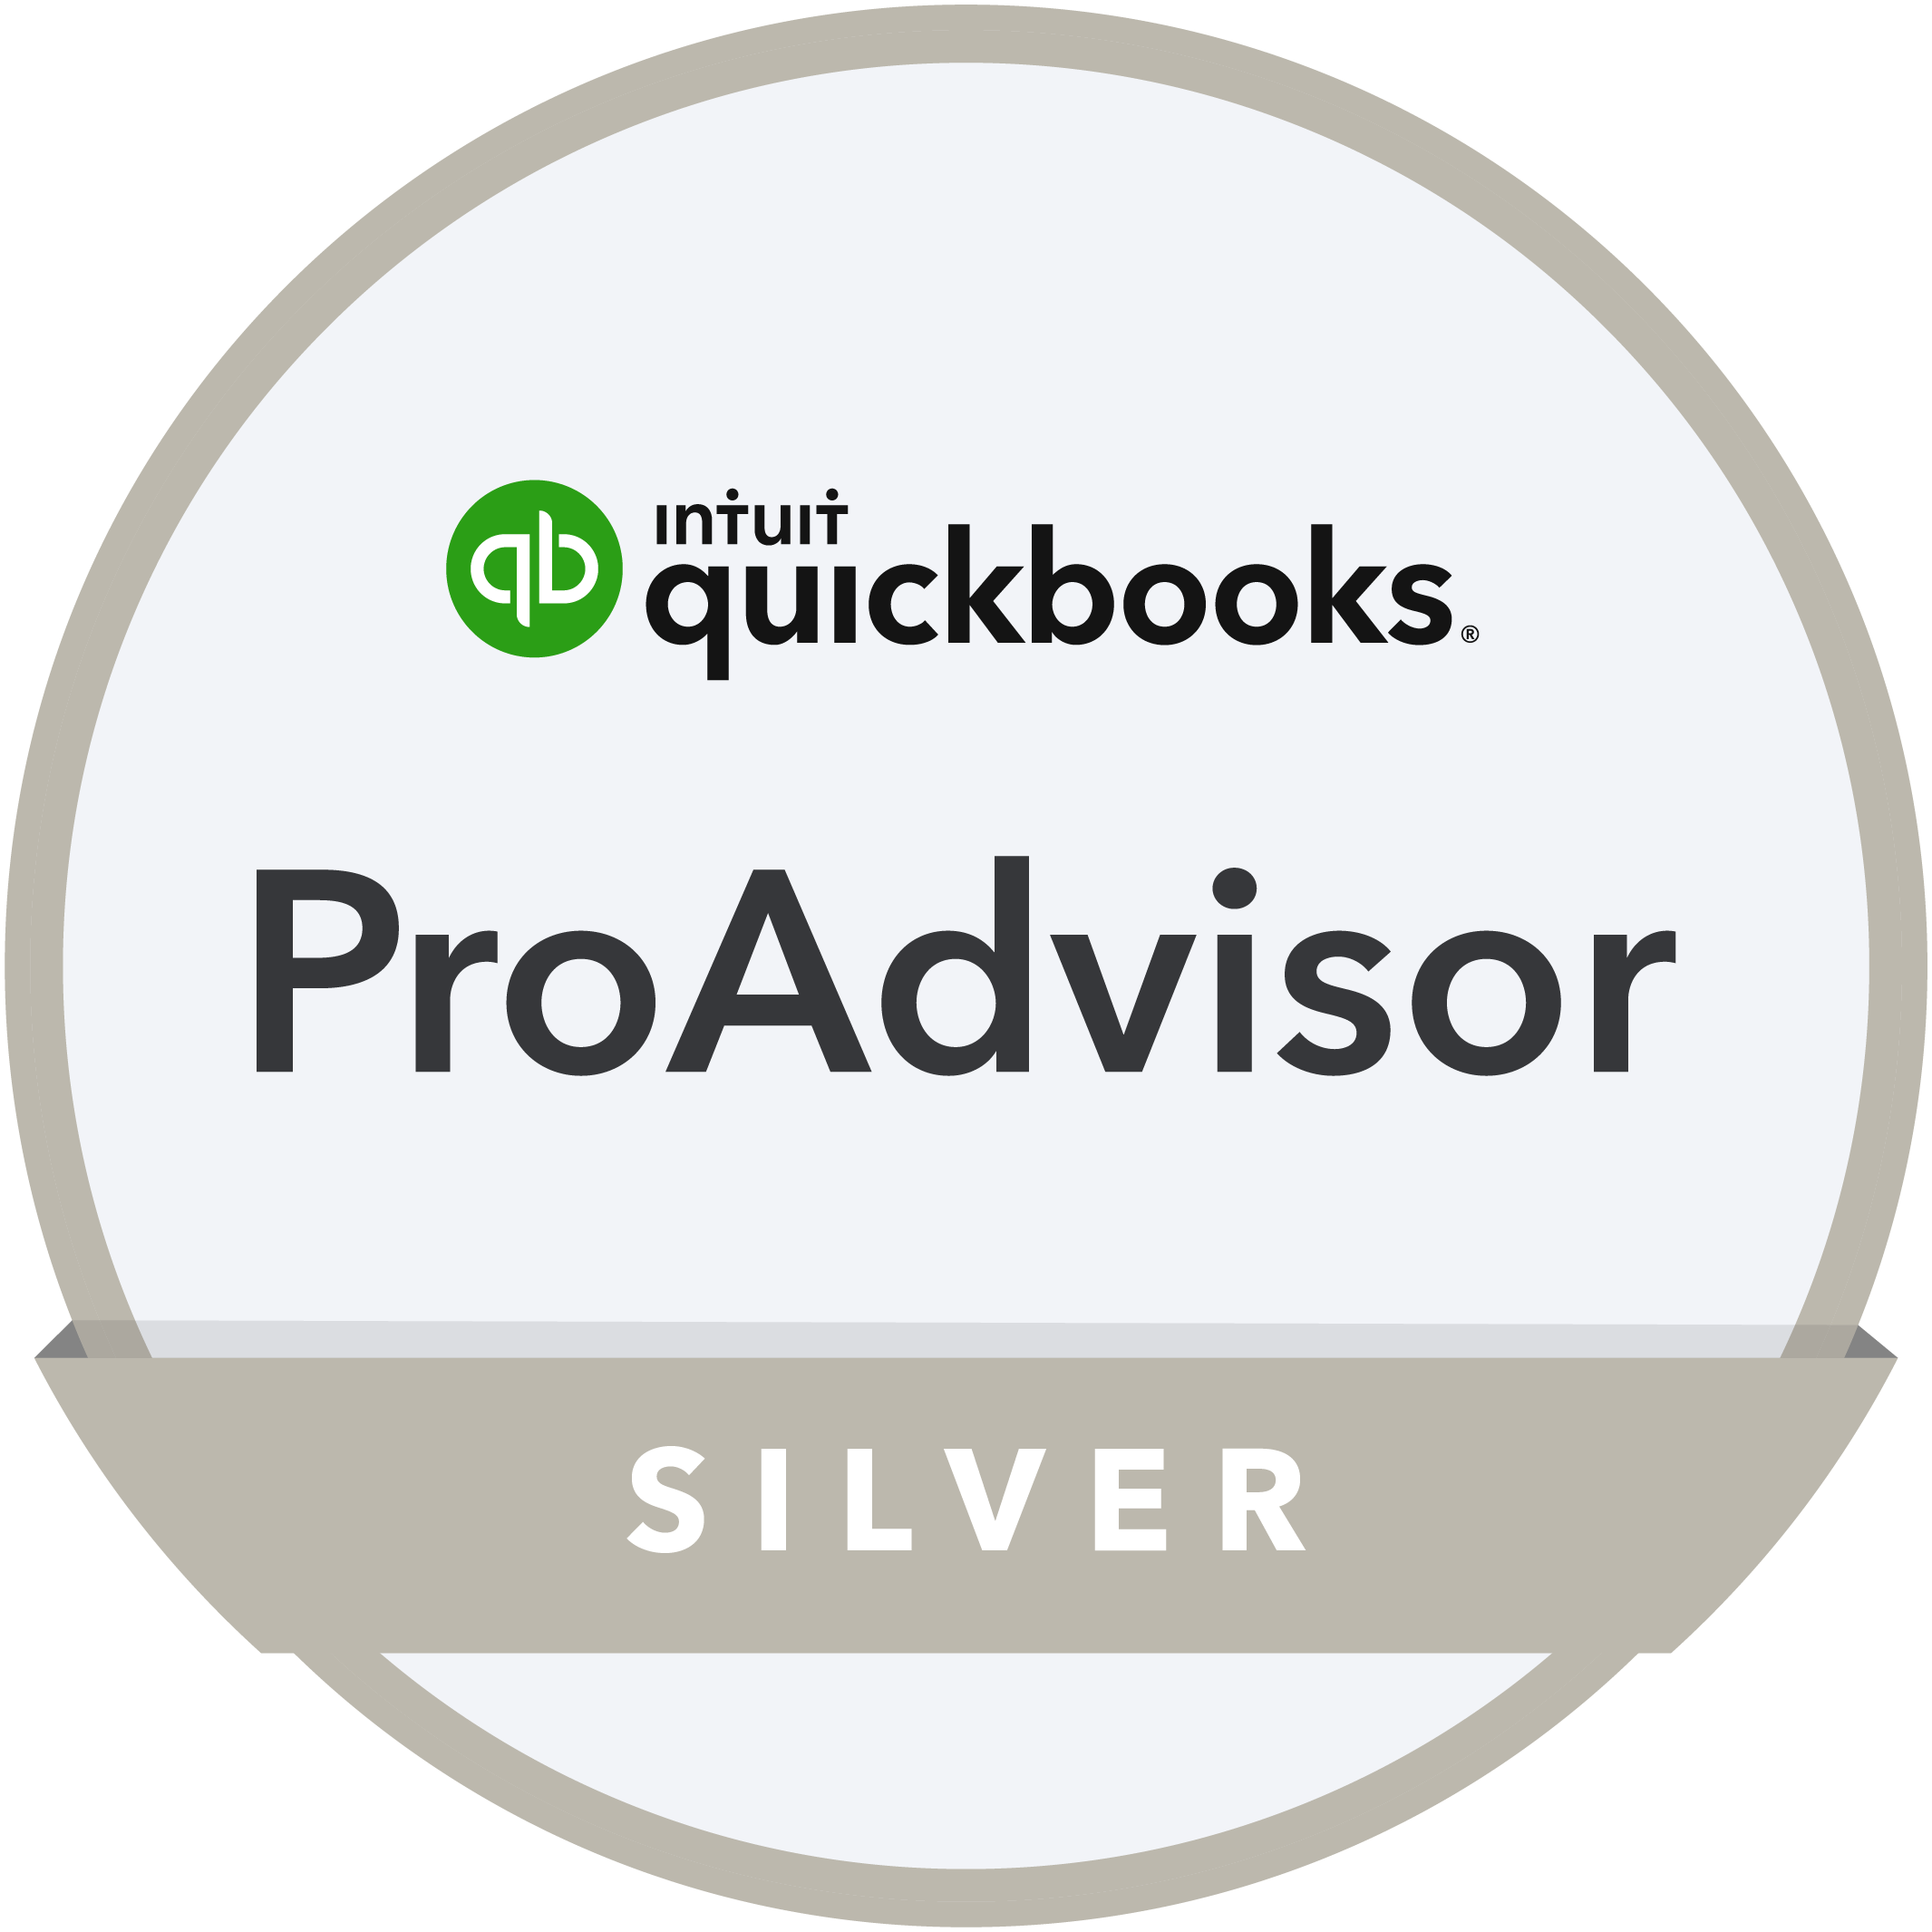 QuickBooks advisor and trainer